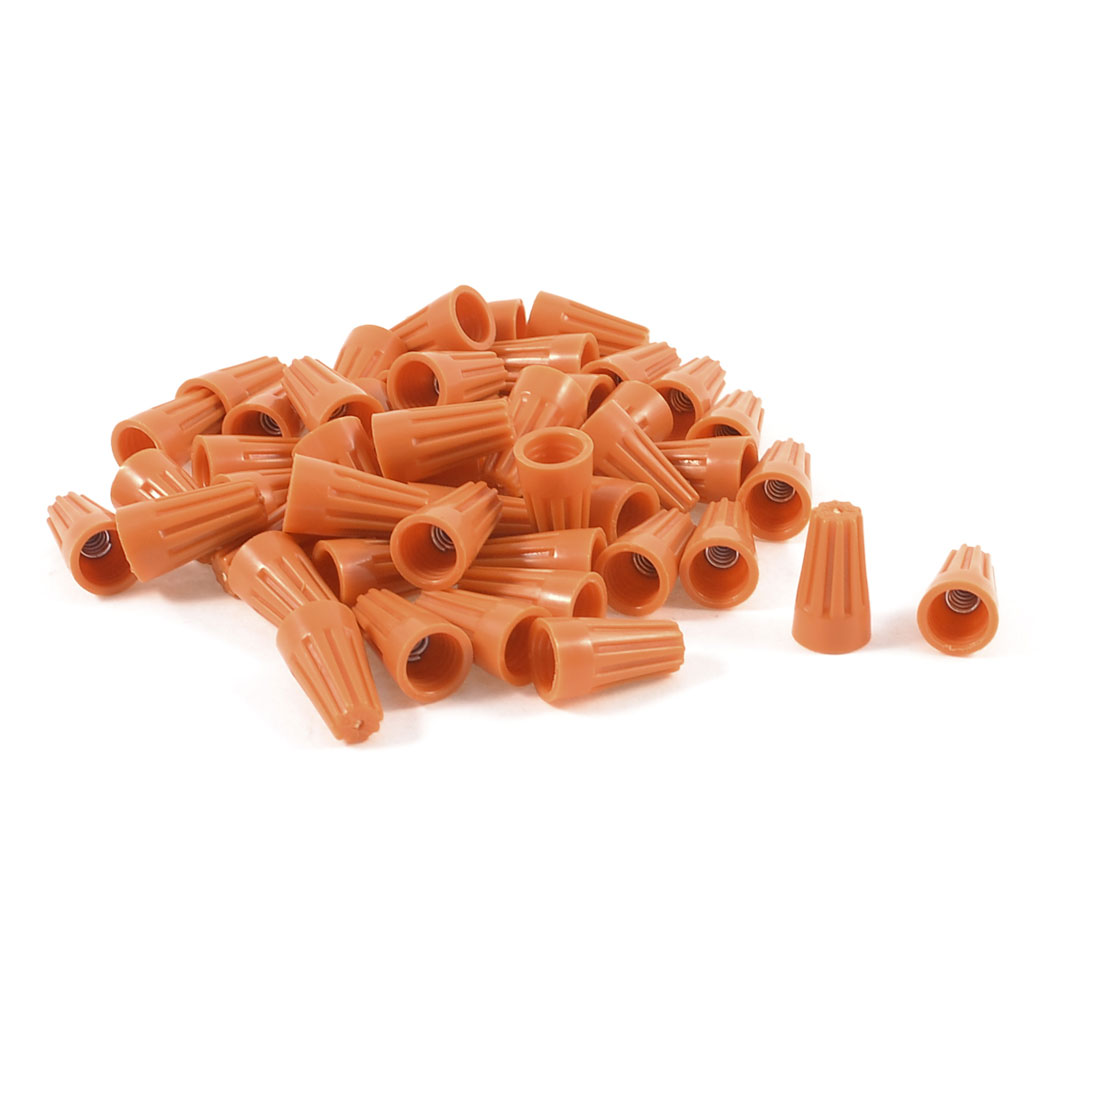 50-Pcs-P1-Electrical-Orange-Straight-Barrel-Wiring-Connectors-Wire-Nuts